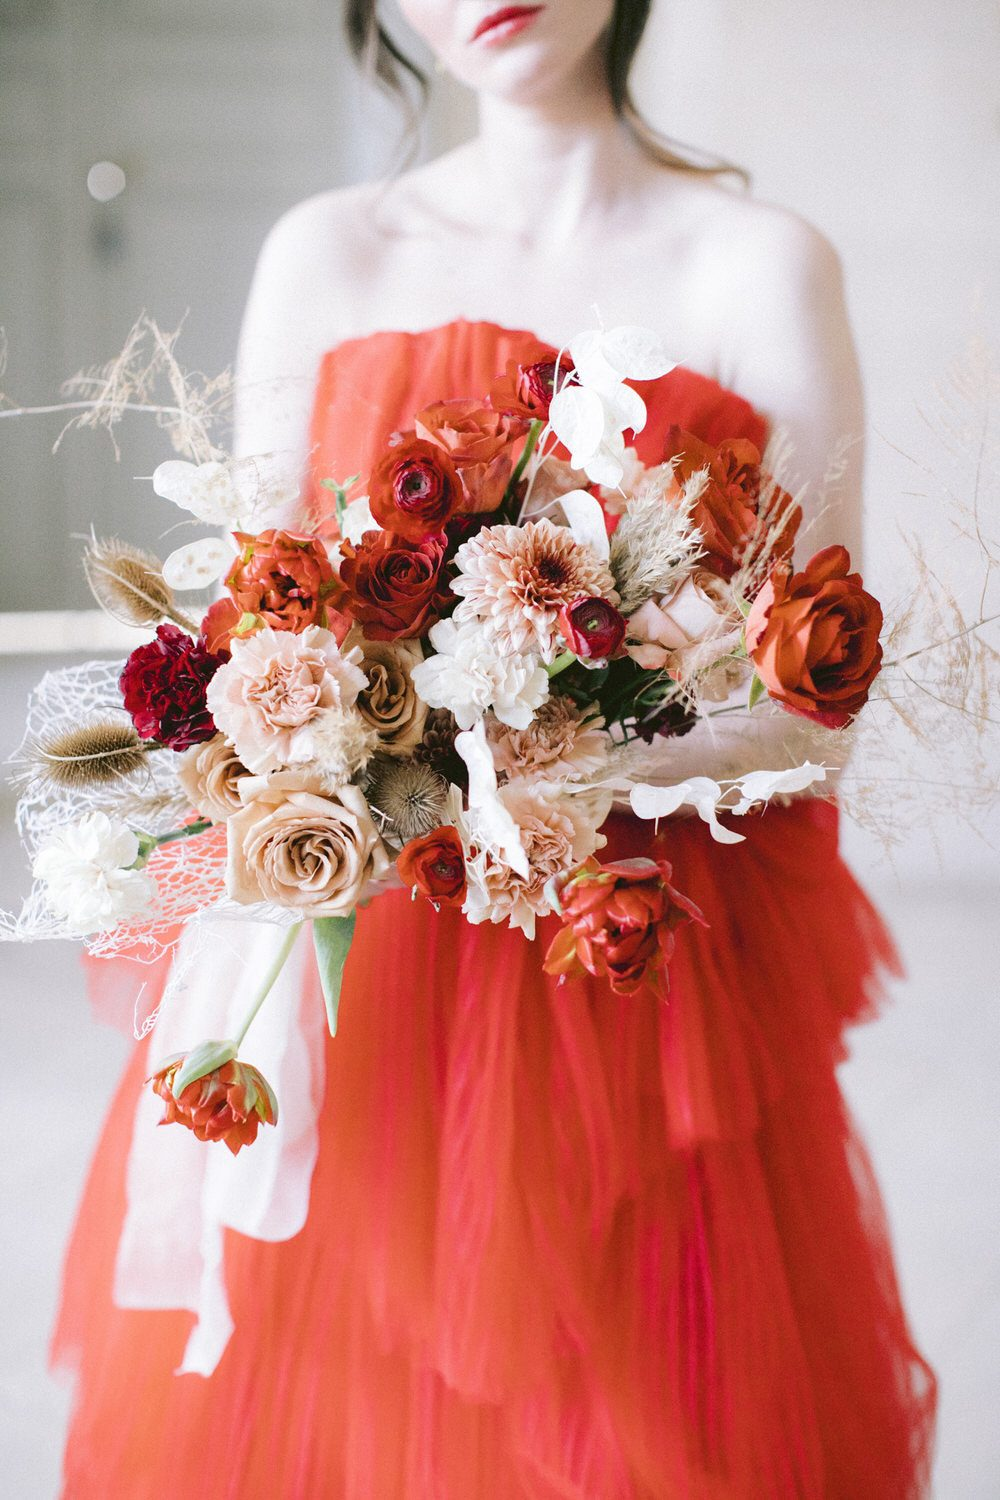 Fine Art French Wedding with a Playful Design in Dazzling Reds ⋆ Ruffled